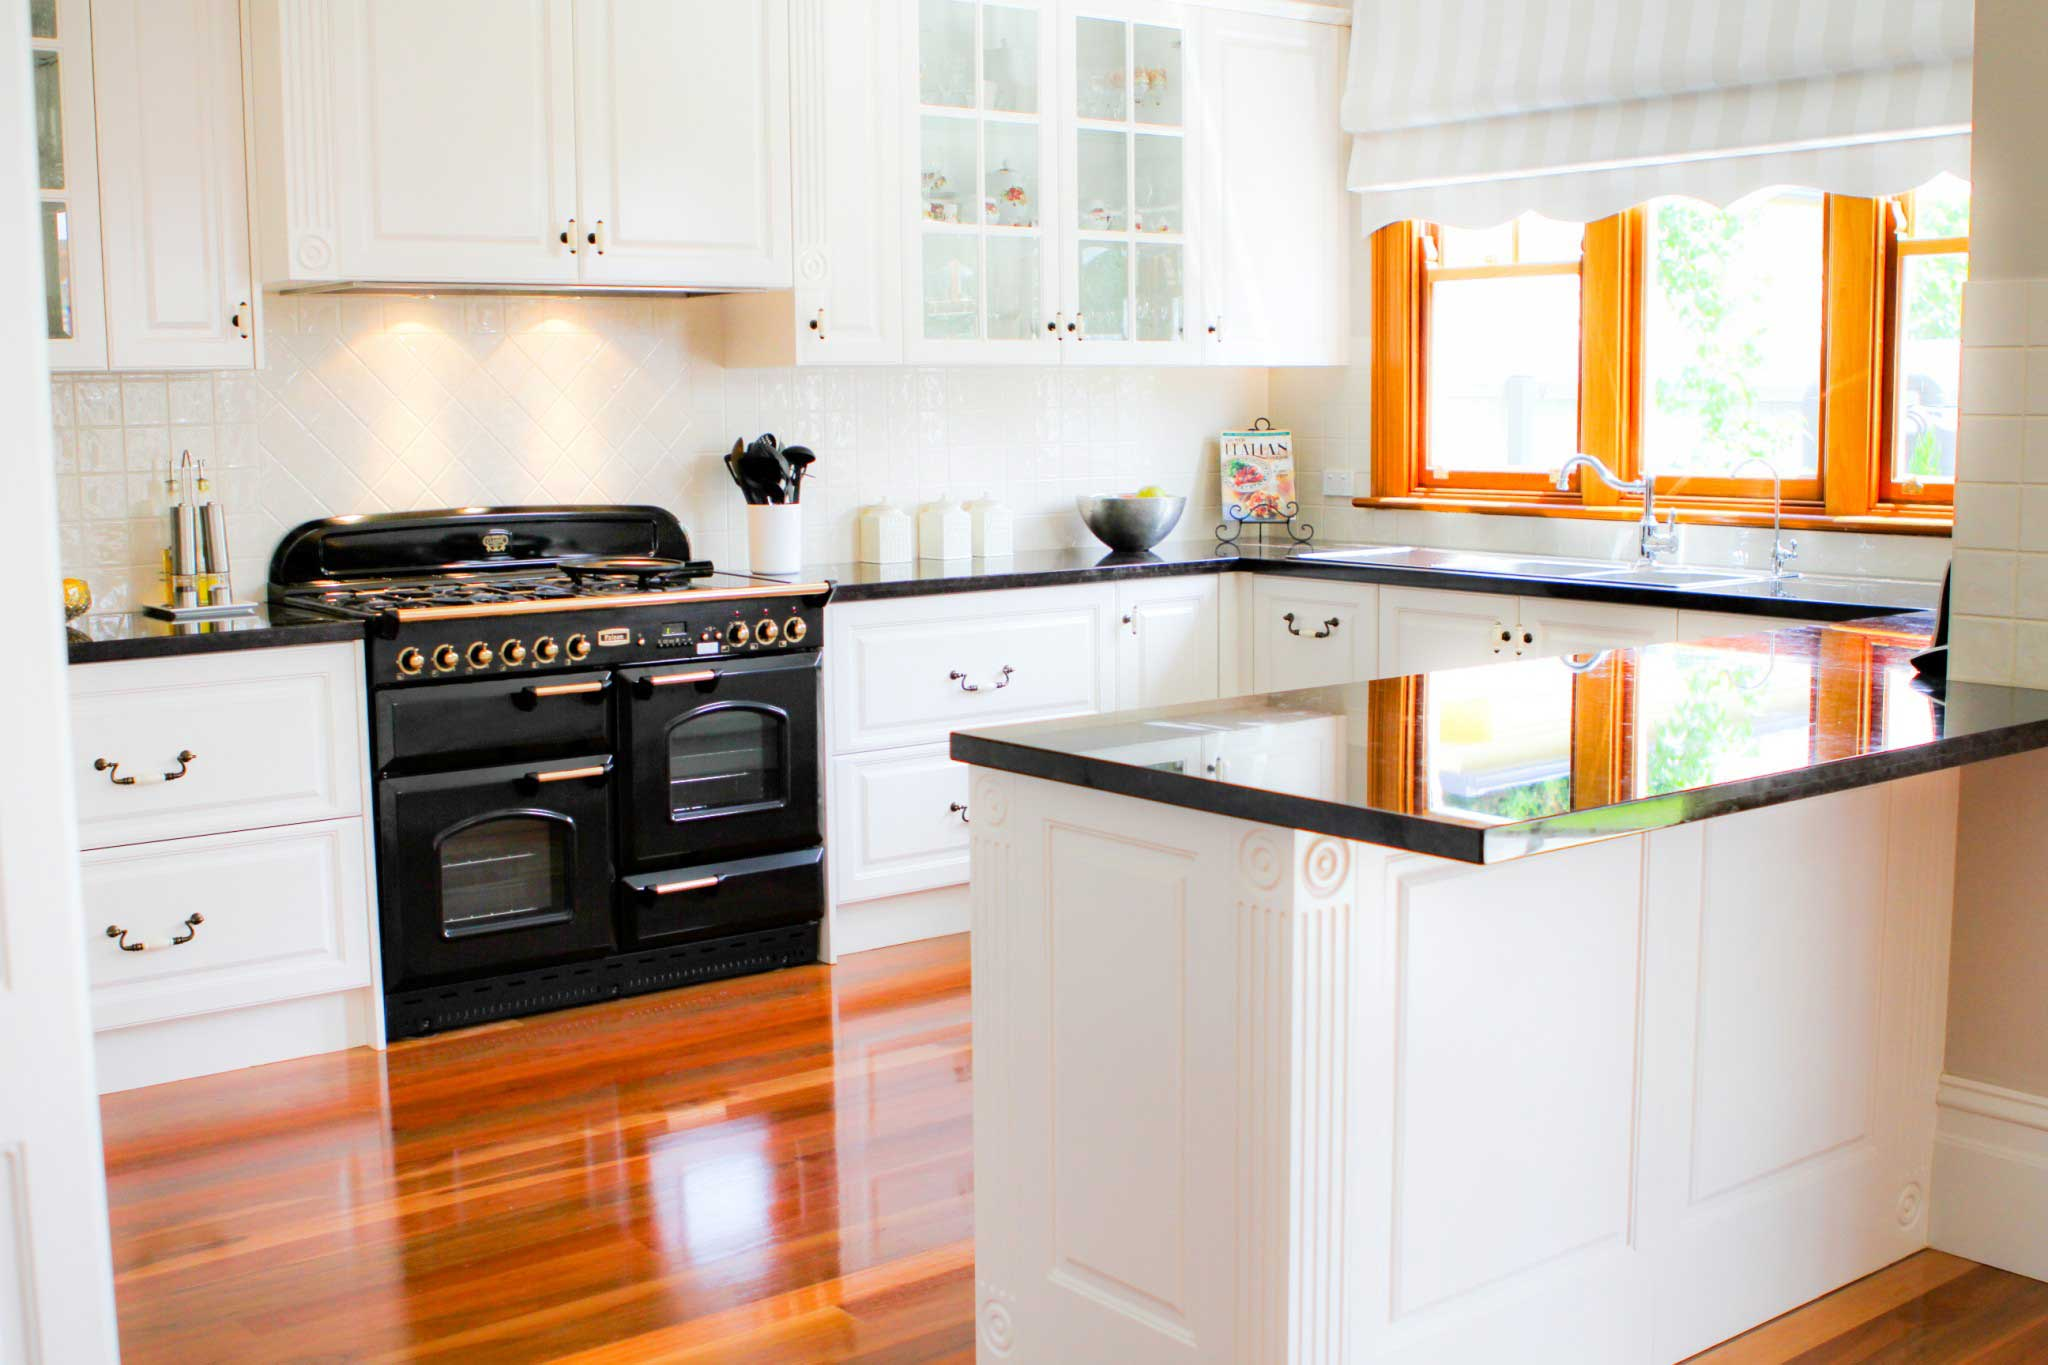 French provincial kitchens melbourne rosemount kitchens for French provincial kitchen designs melbourne